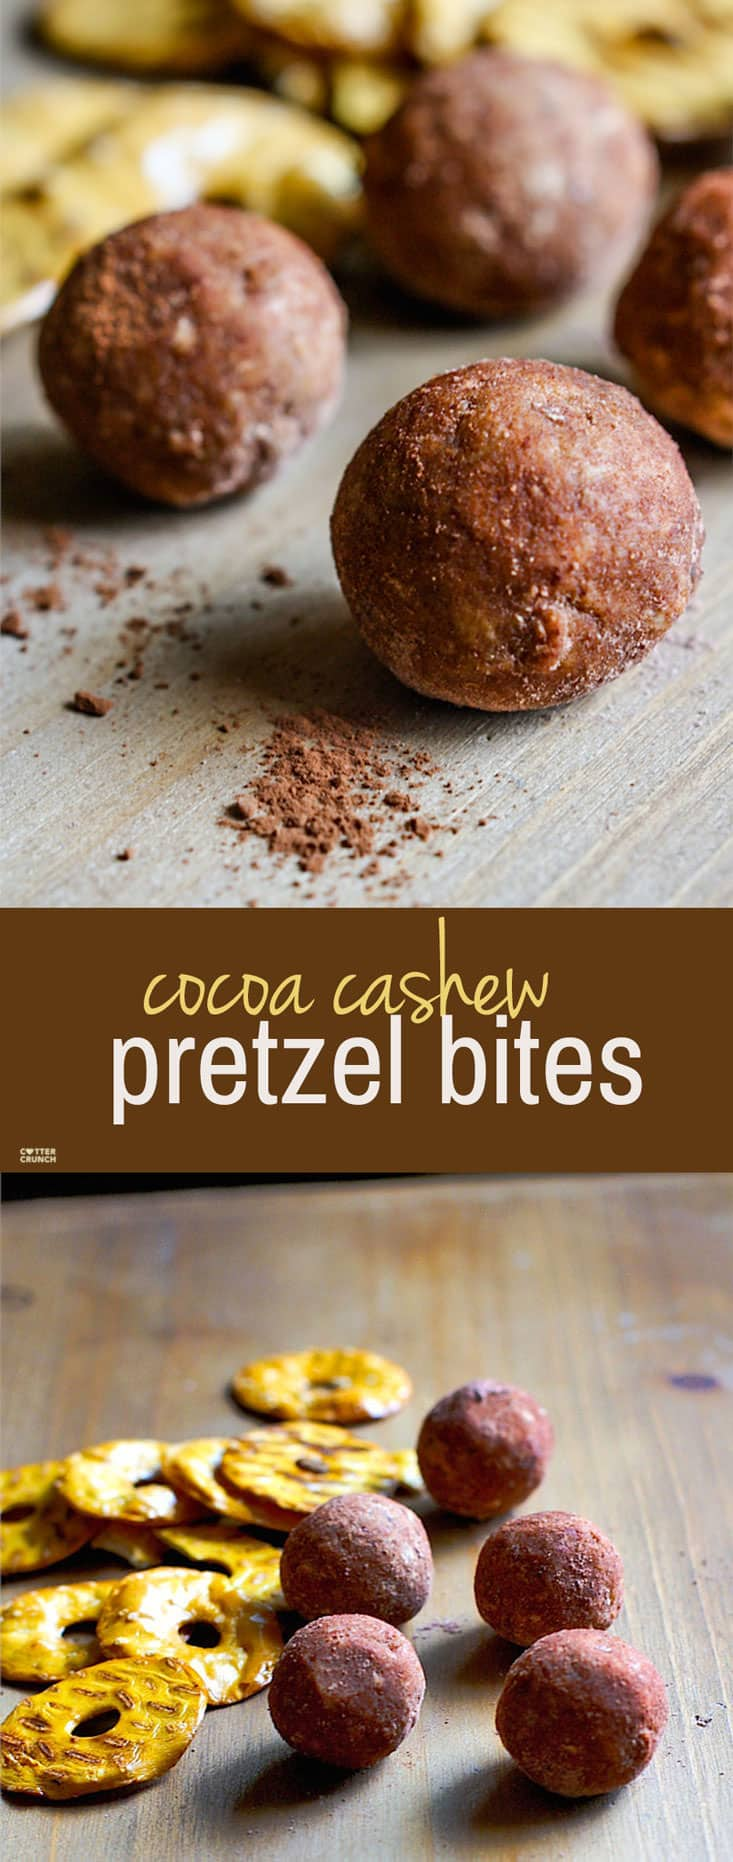 Cocoa Cashew Pretzel Gluten Free Energy Bites! A sweet and salty combo that takes snacking to a whole new level! Dark Cocoa, Cashews, honey, peanut butter, and gluten free pretzel chips all packed into one healthy no bake energy bite! Great for kids, post workout refueling, or just as an afternoon snack!